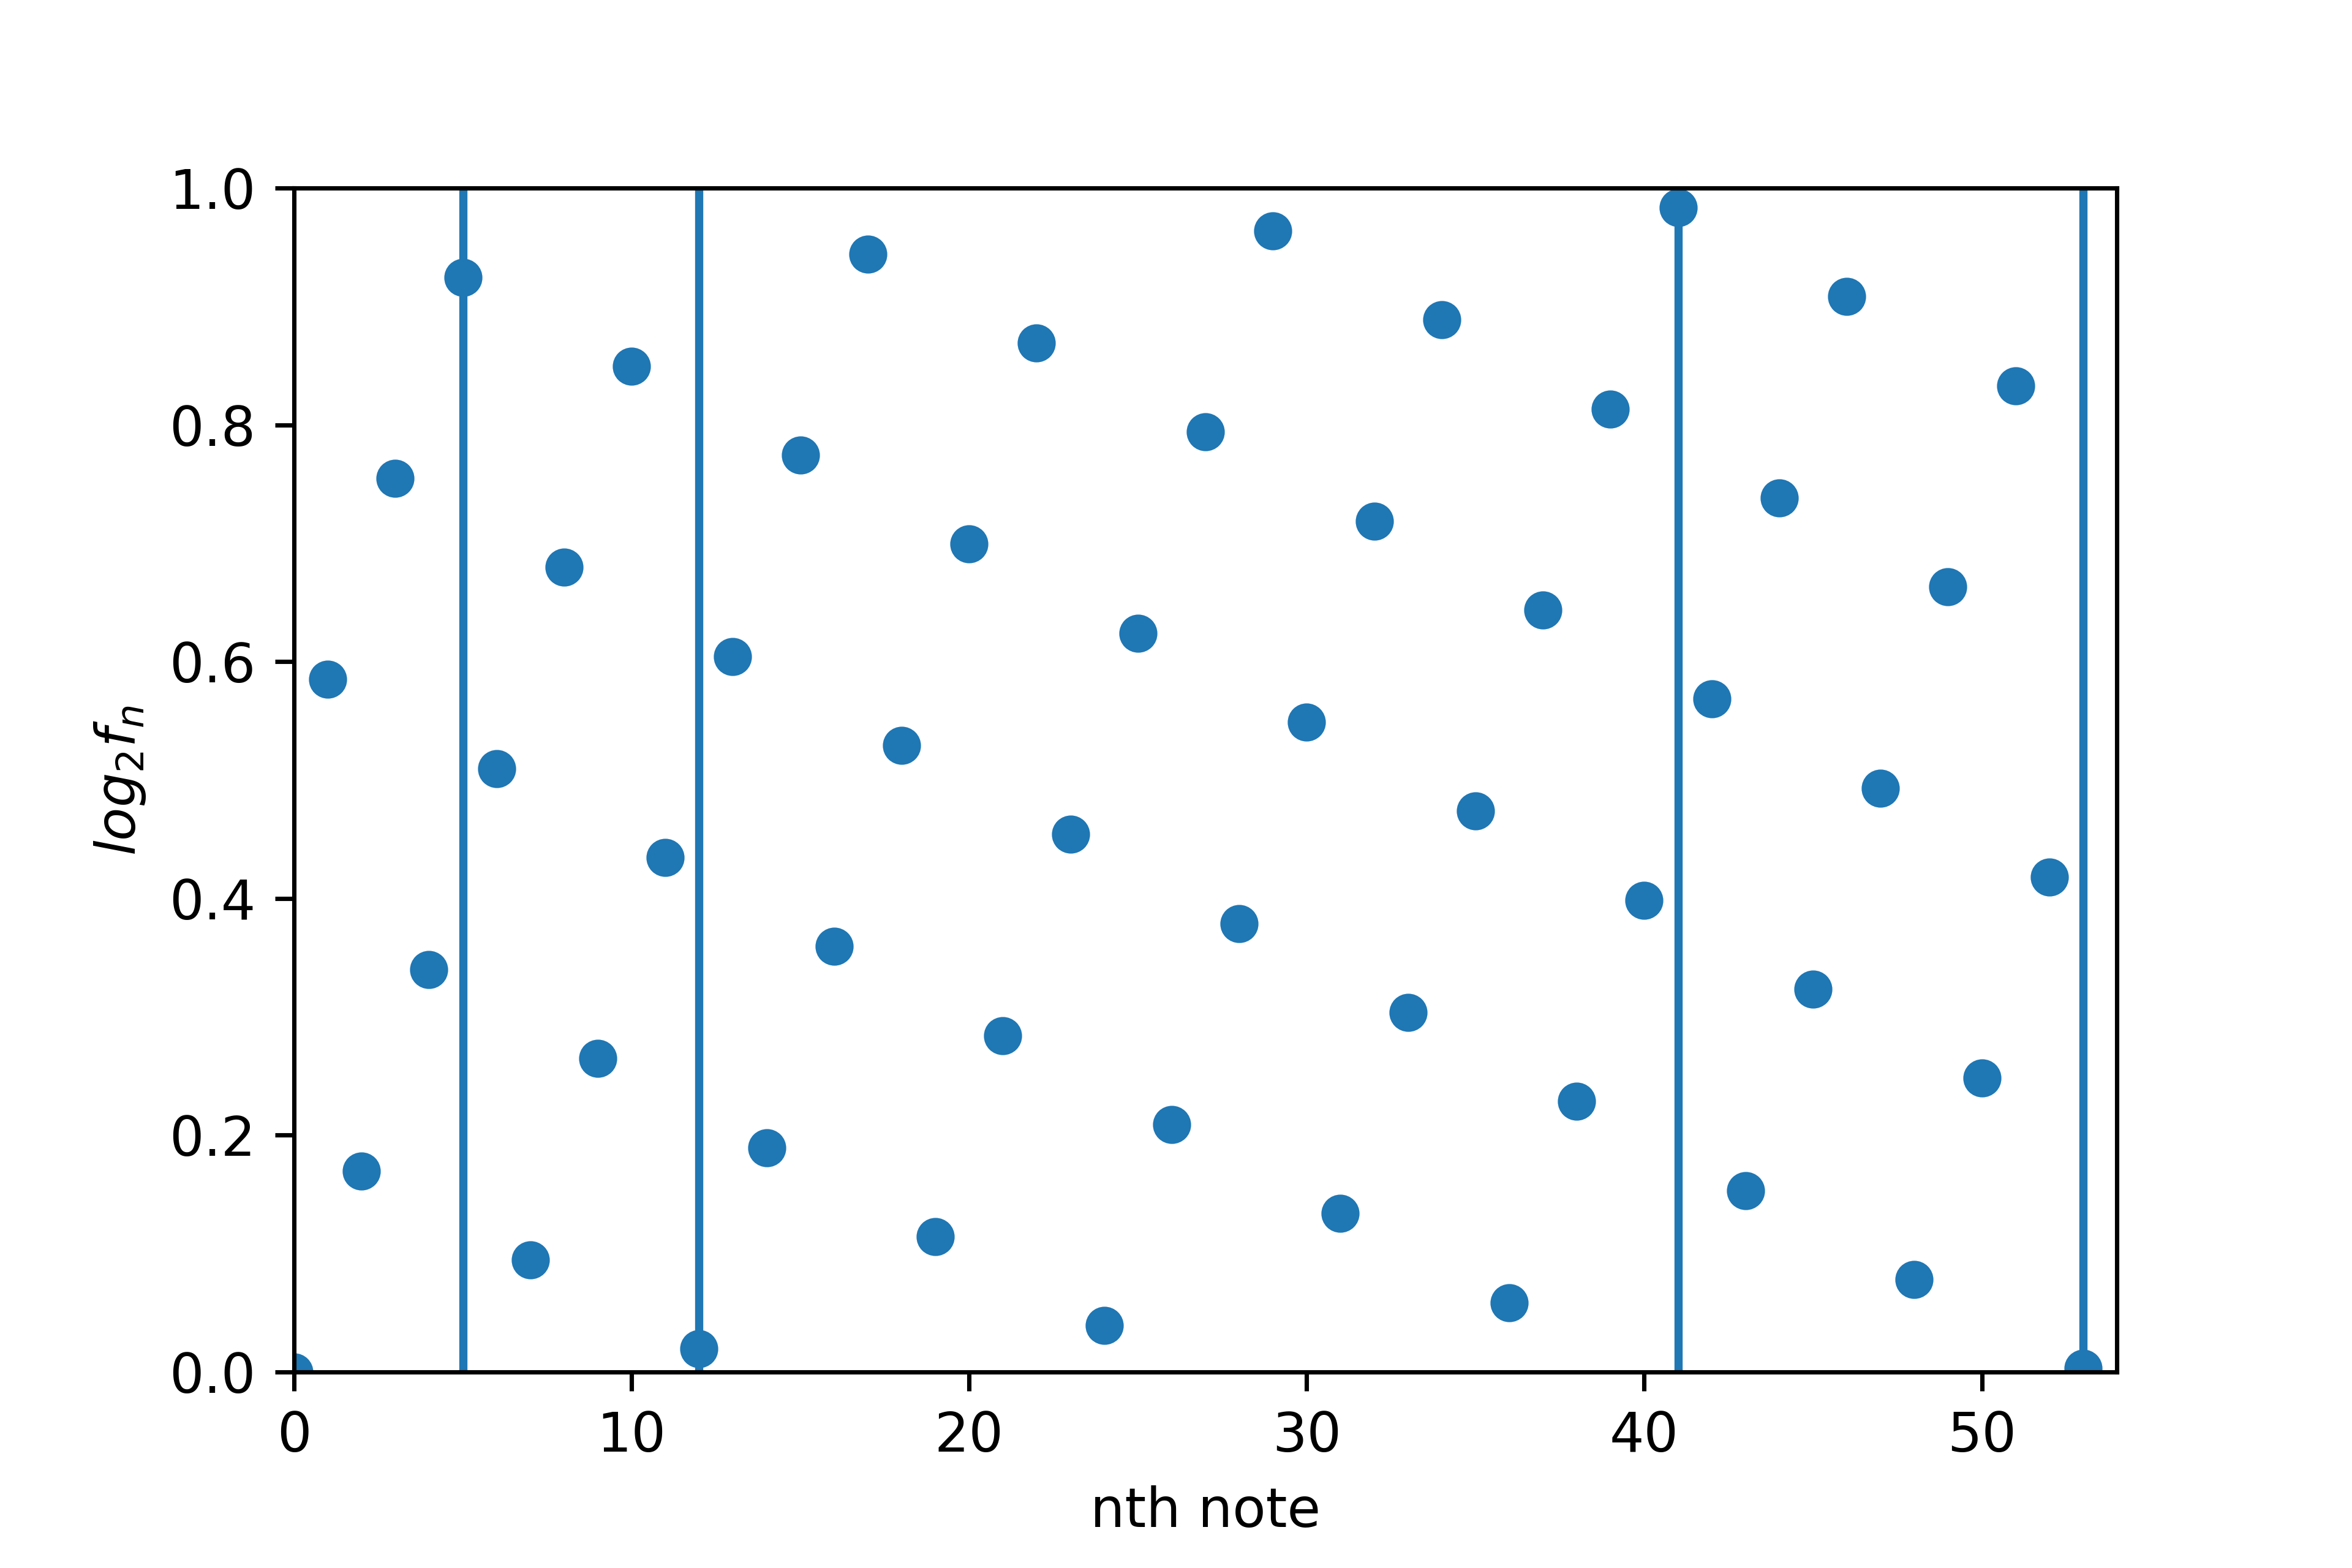 Lattice of fifths plot as logarithmic frequencies